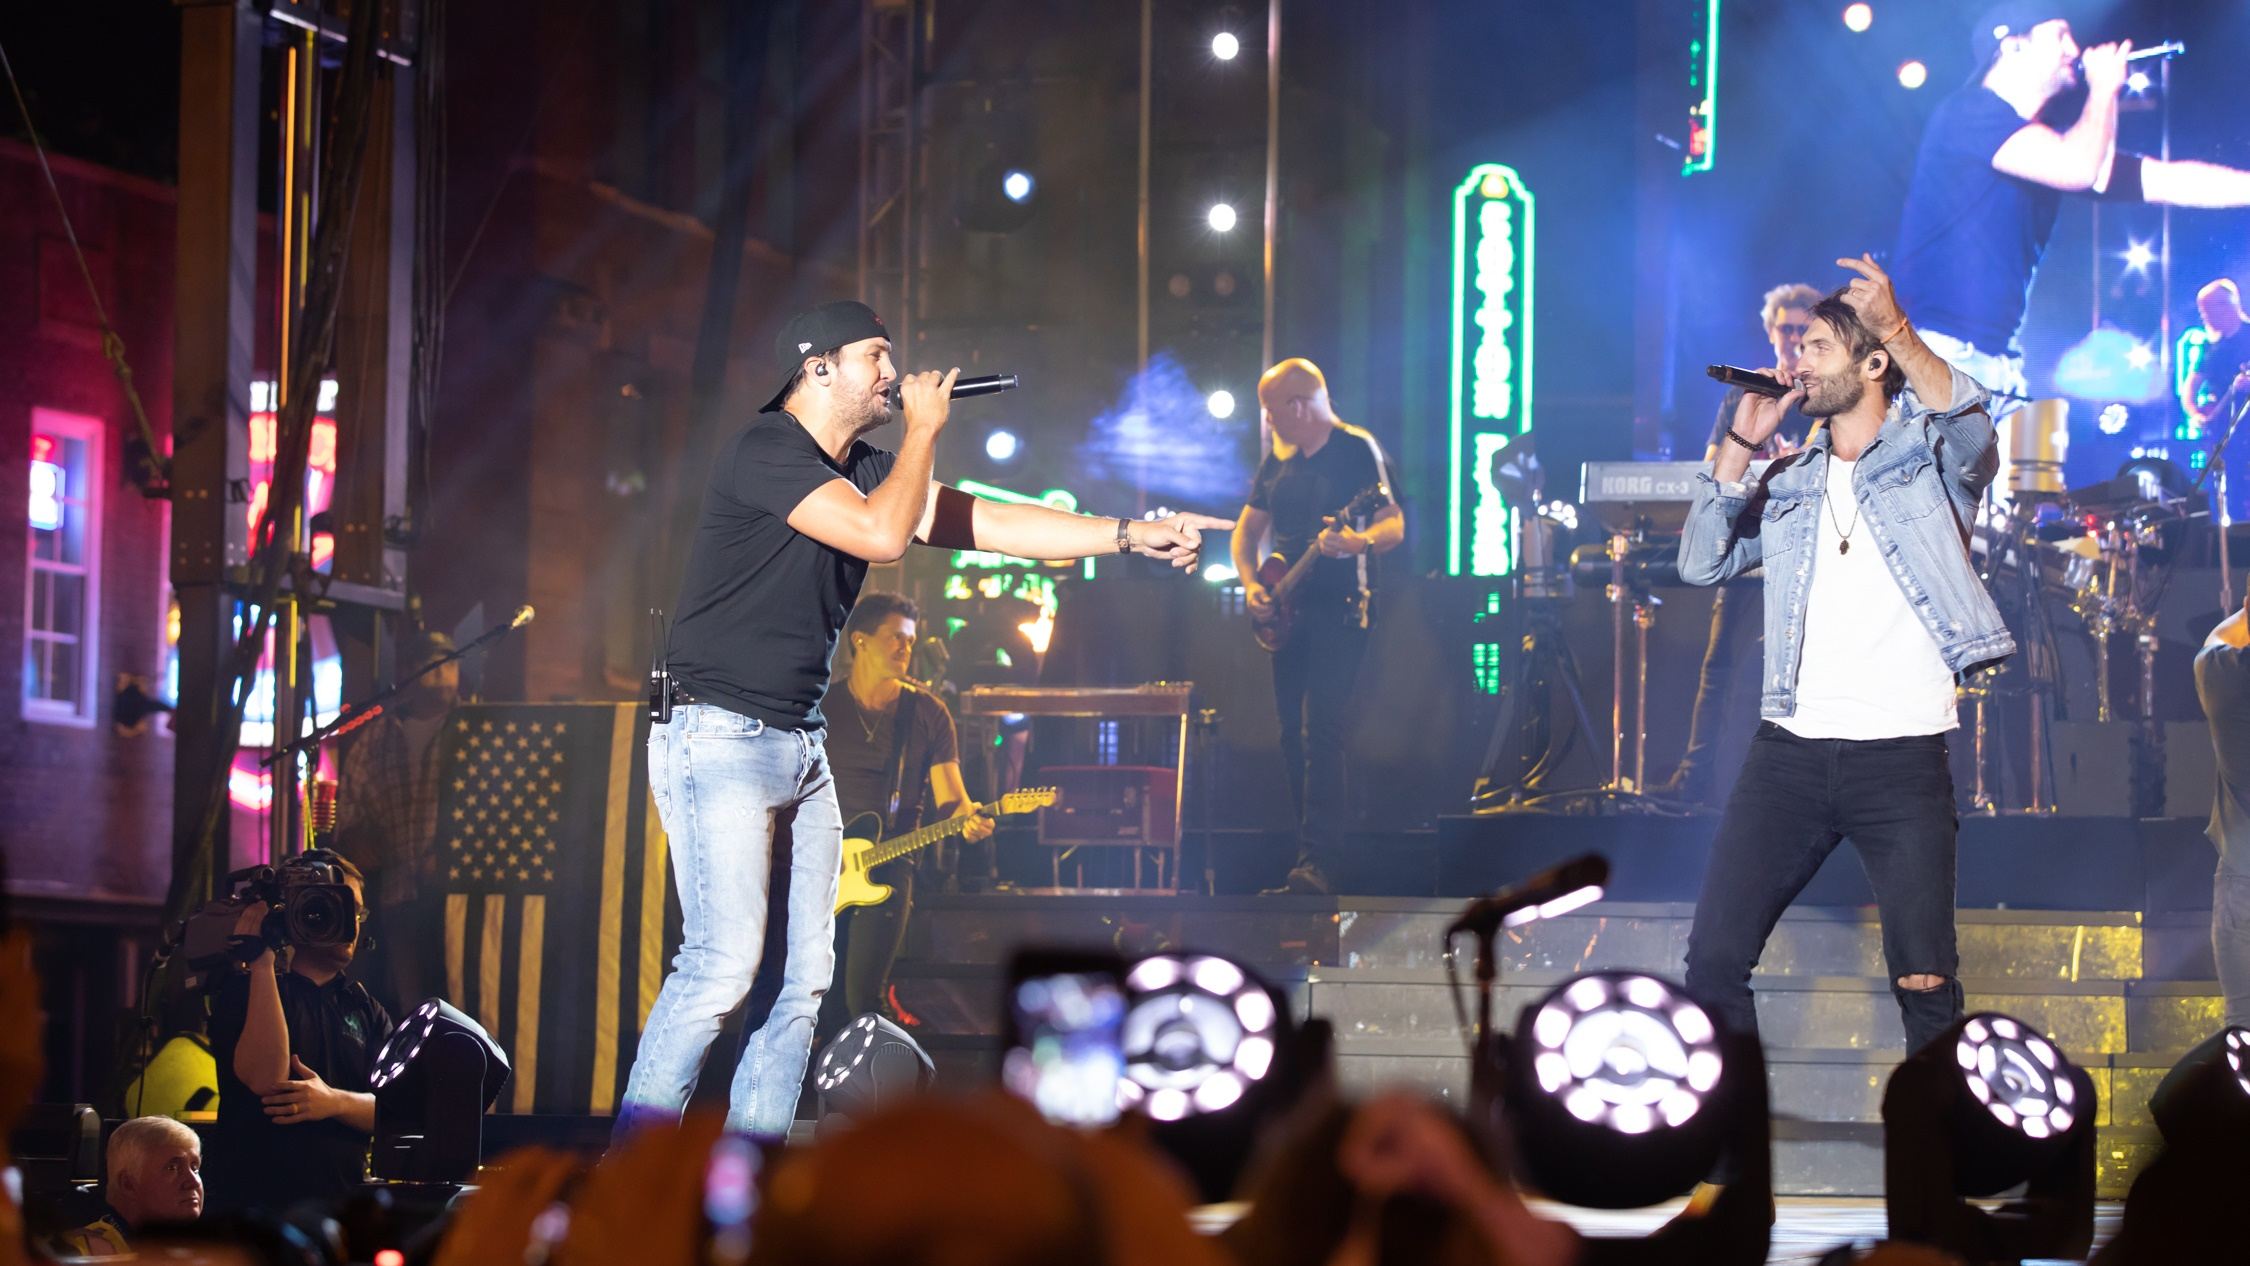 Luke Bryan Plays To 30 000 Fans During Free Downtown